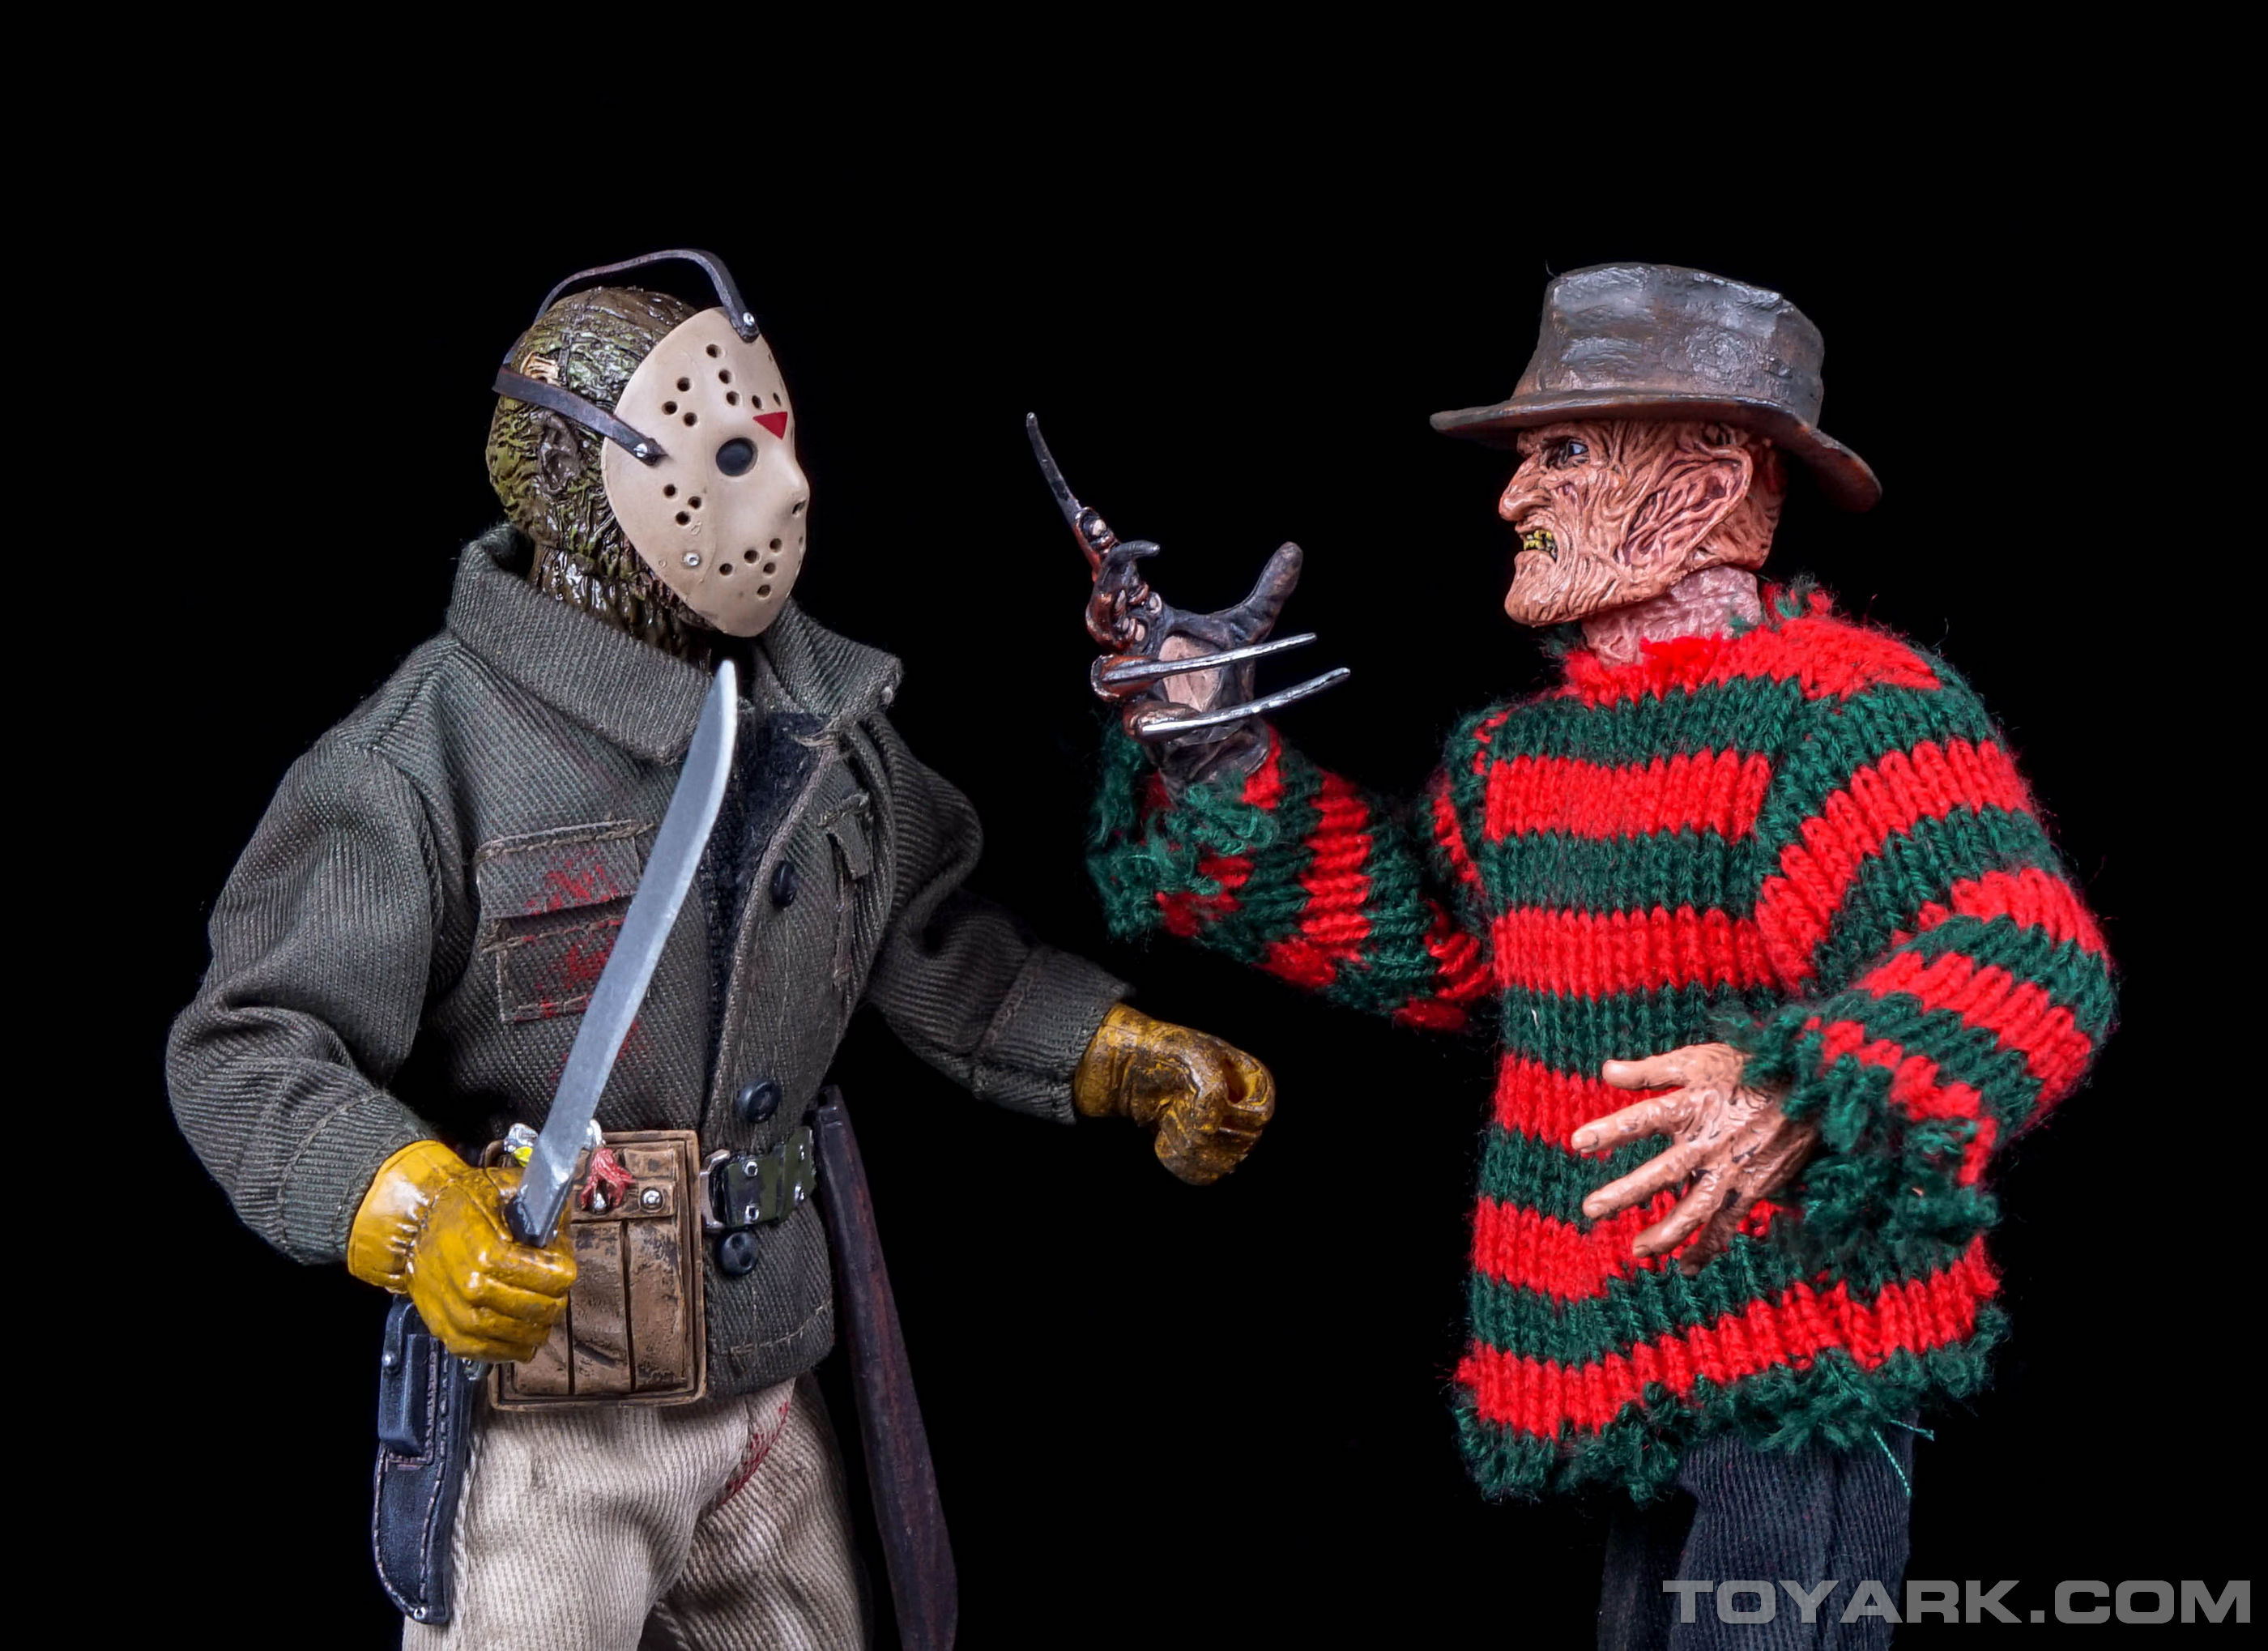 http://news.toyark.com/wp-content/uploads/sites/4/2015/08/Friday-The-13th-Part-6-Retro-Jason-044.jpg